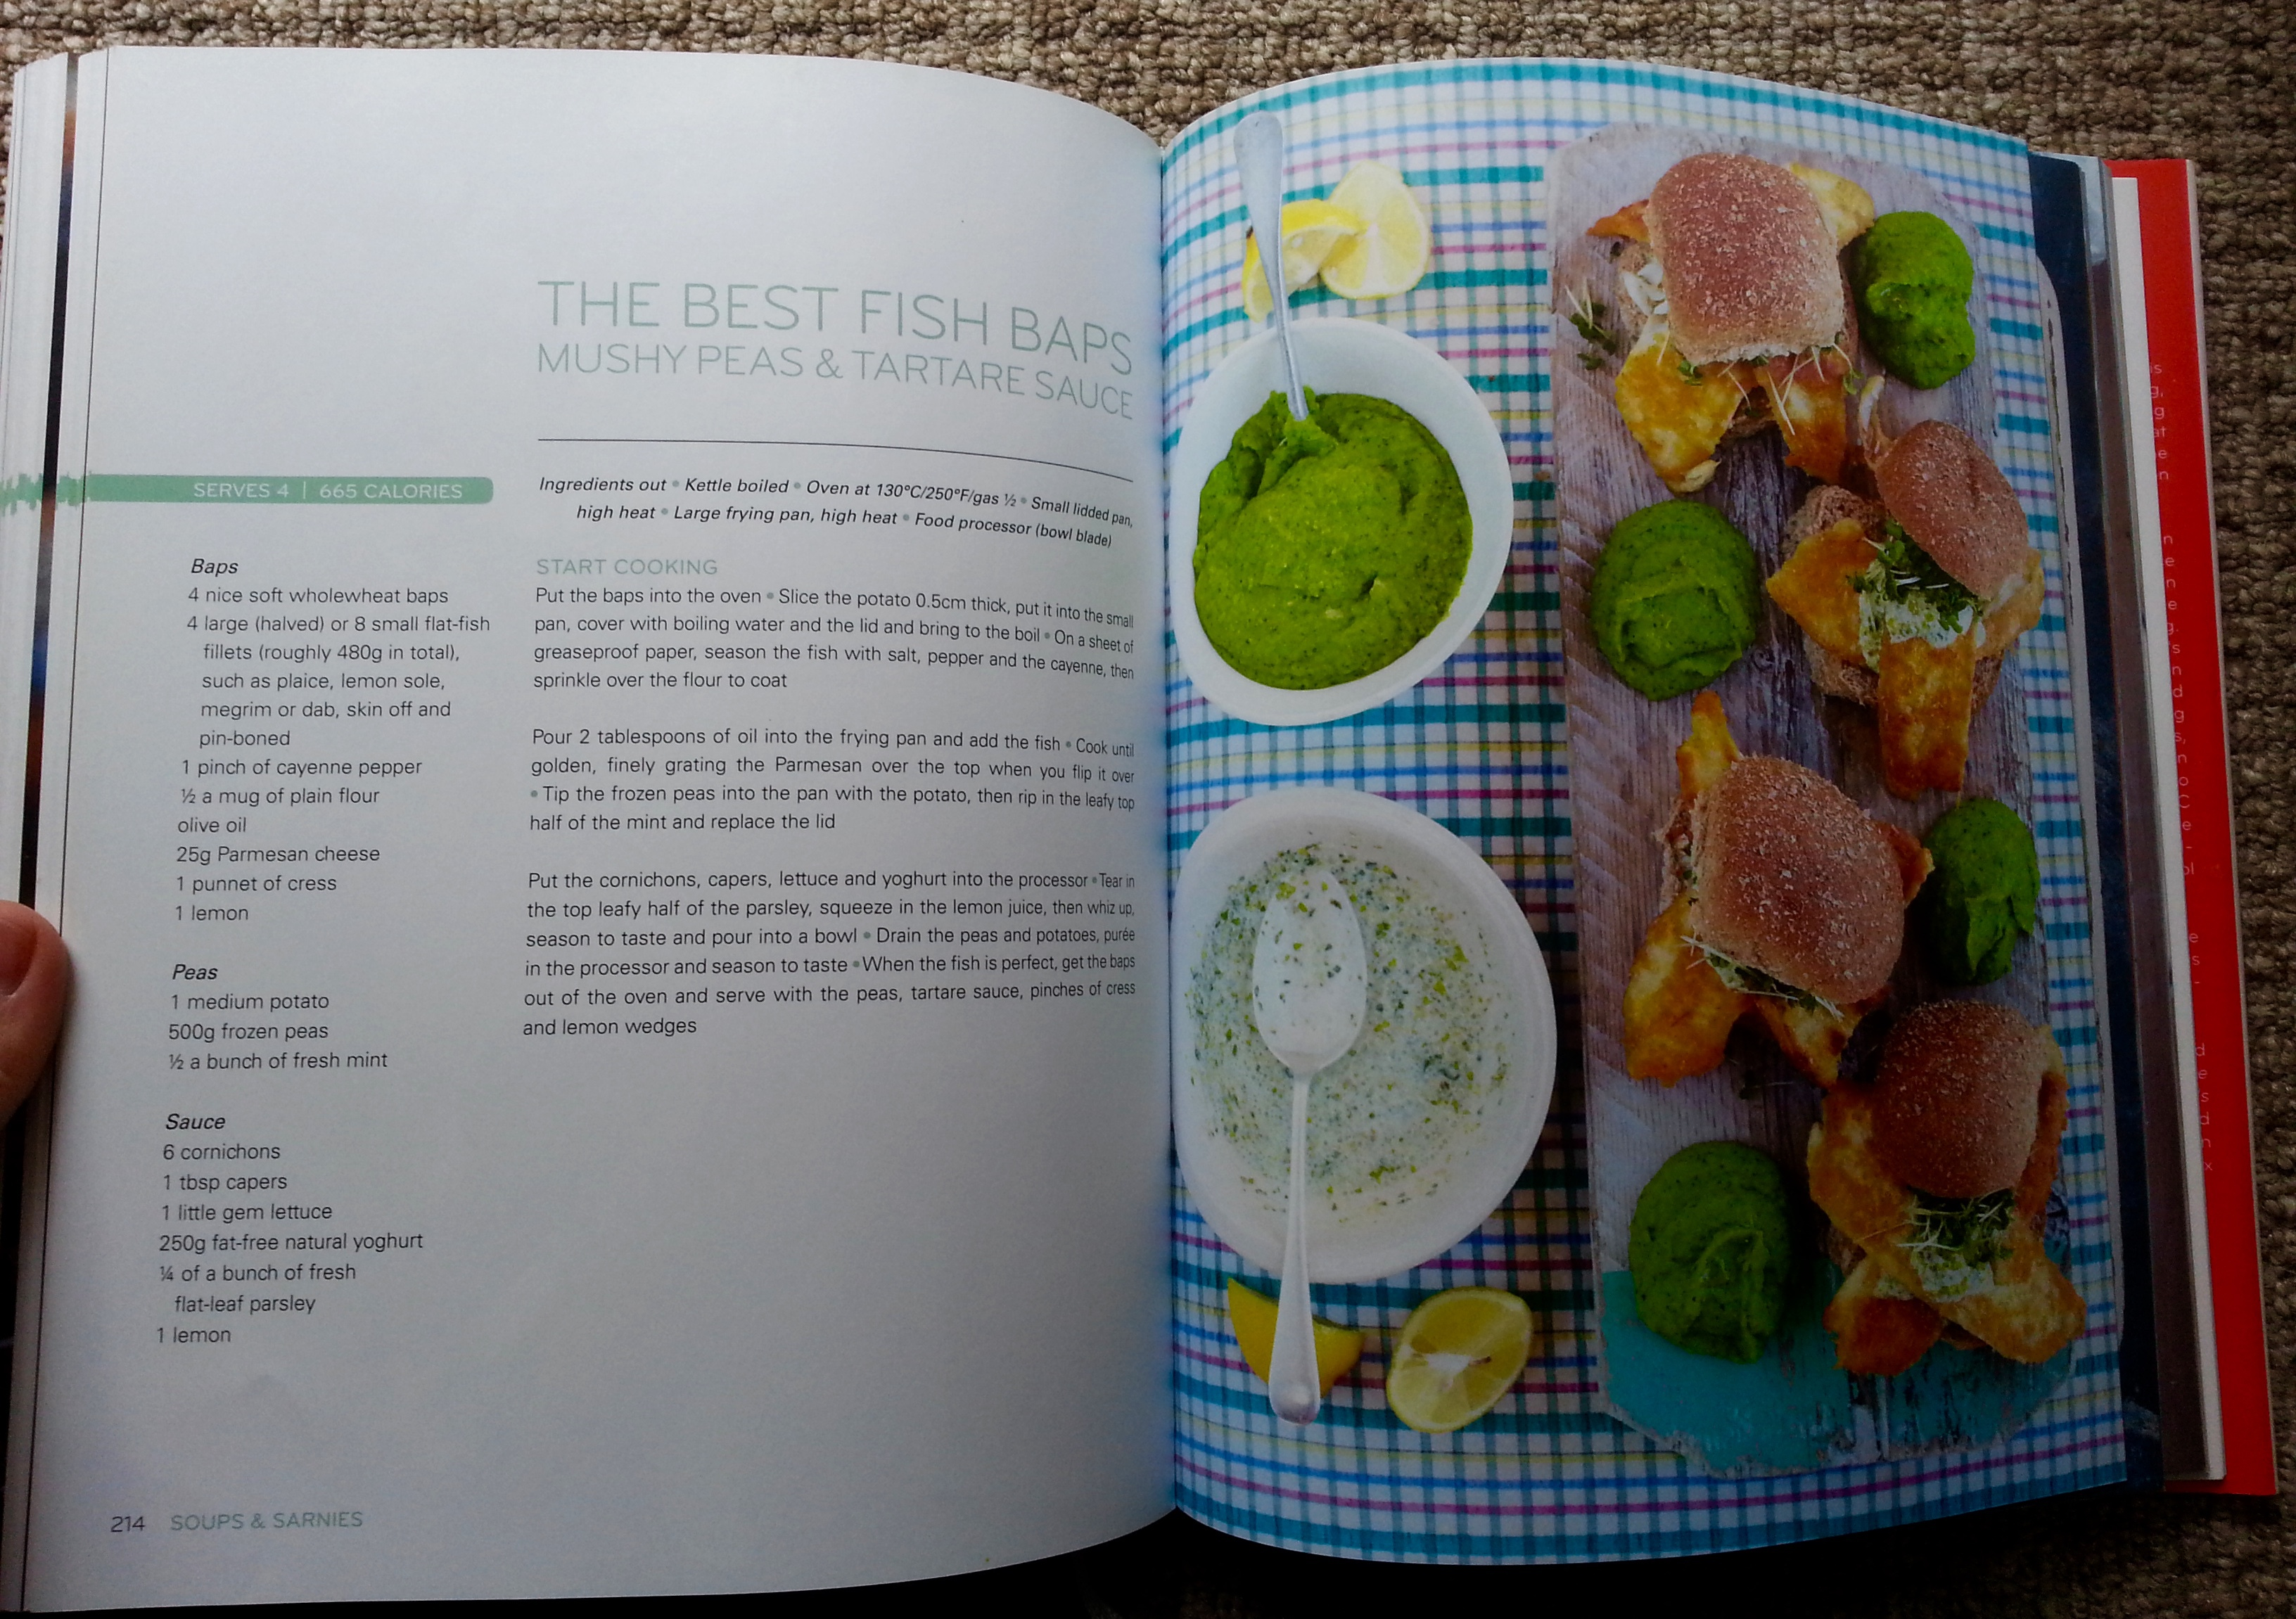 Jamies 15 minute meals book review everywhere jamies 15 minute meals jamie oliver recipe book best fish baps forumfinder Images